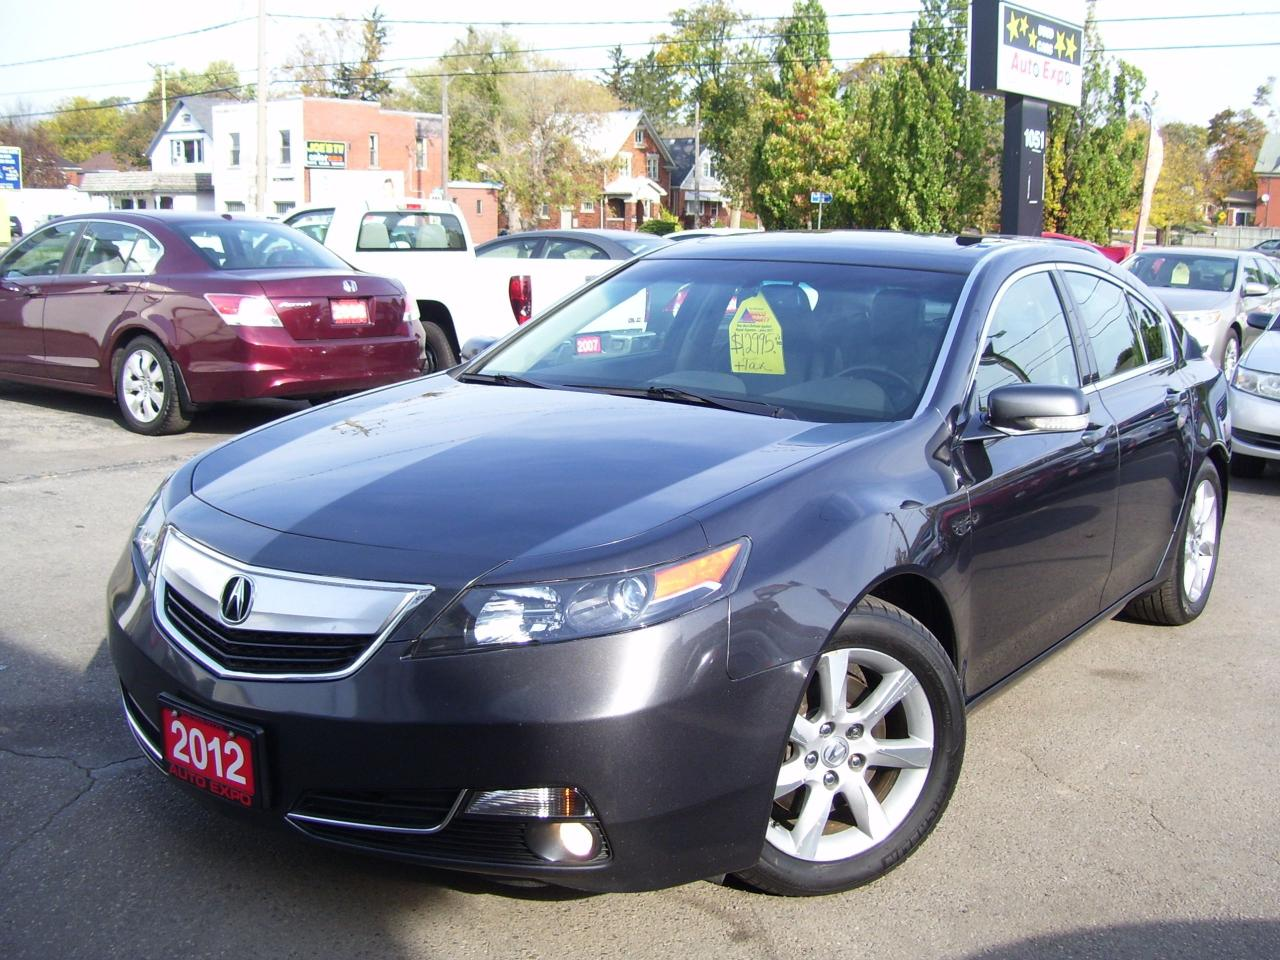 Used 2012 Acura TL Tech Pkg,Bluetooth,Navi,Backup camera for Sale in Acura Yellow Triangle on yellow mclaren, yellow studebaker, yellow honda, yellow saleen, yellow chrysler, yellow kawasaki, yellow mg, yellow eagle, yellow saab, yellow morgan, yellow cord, yellow lexus, yellow motorcycle,